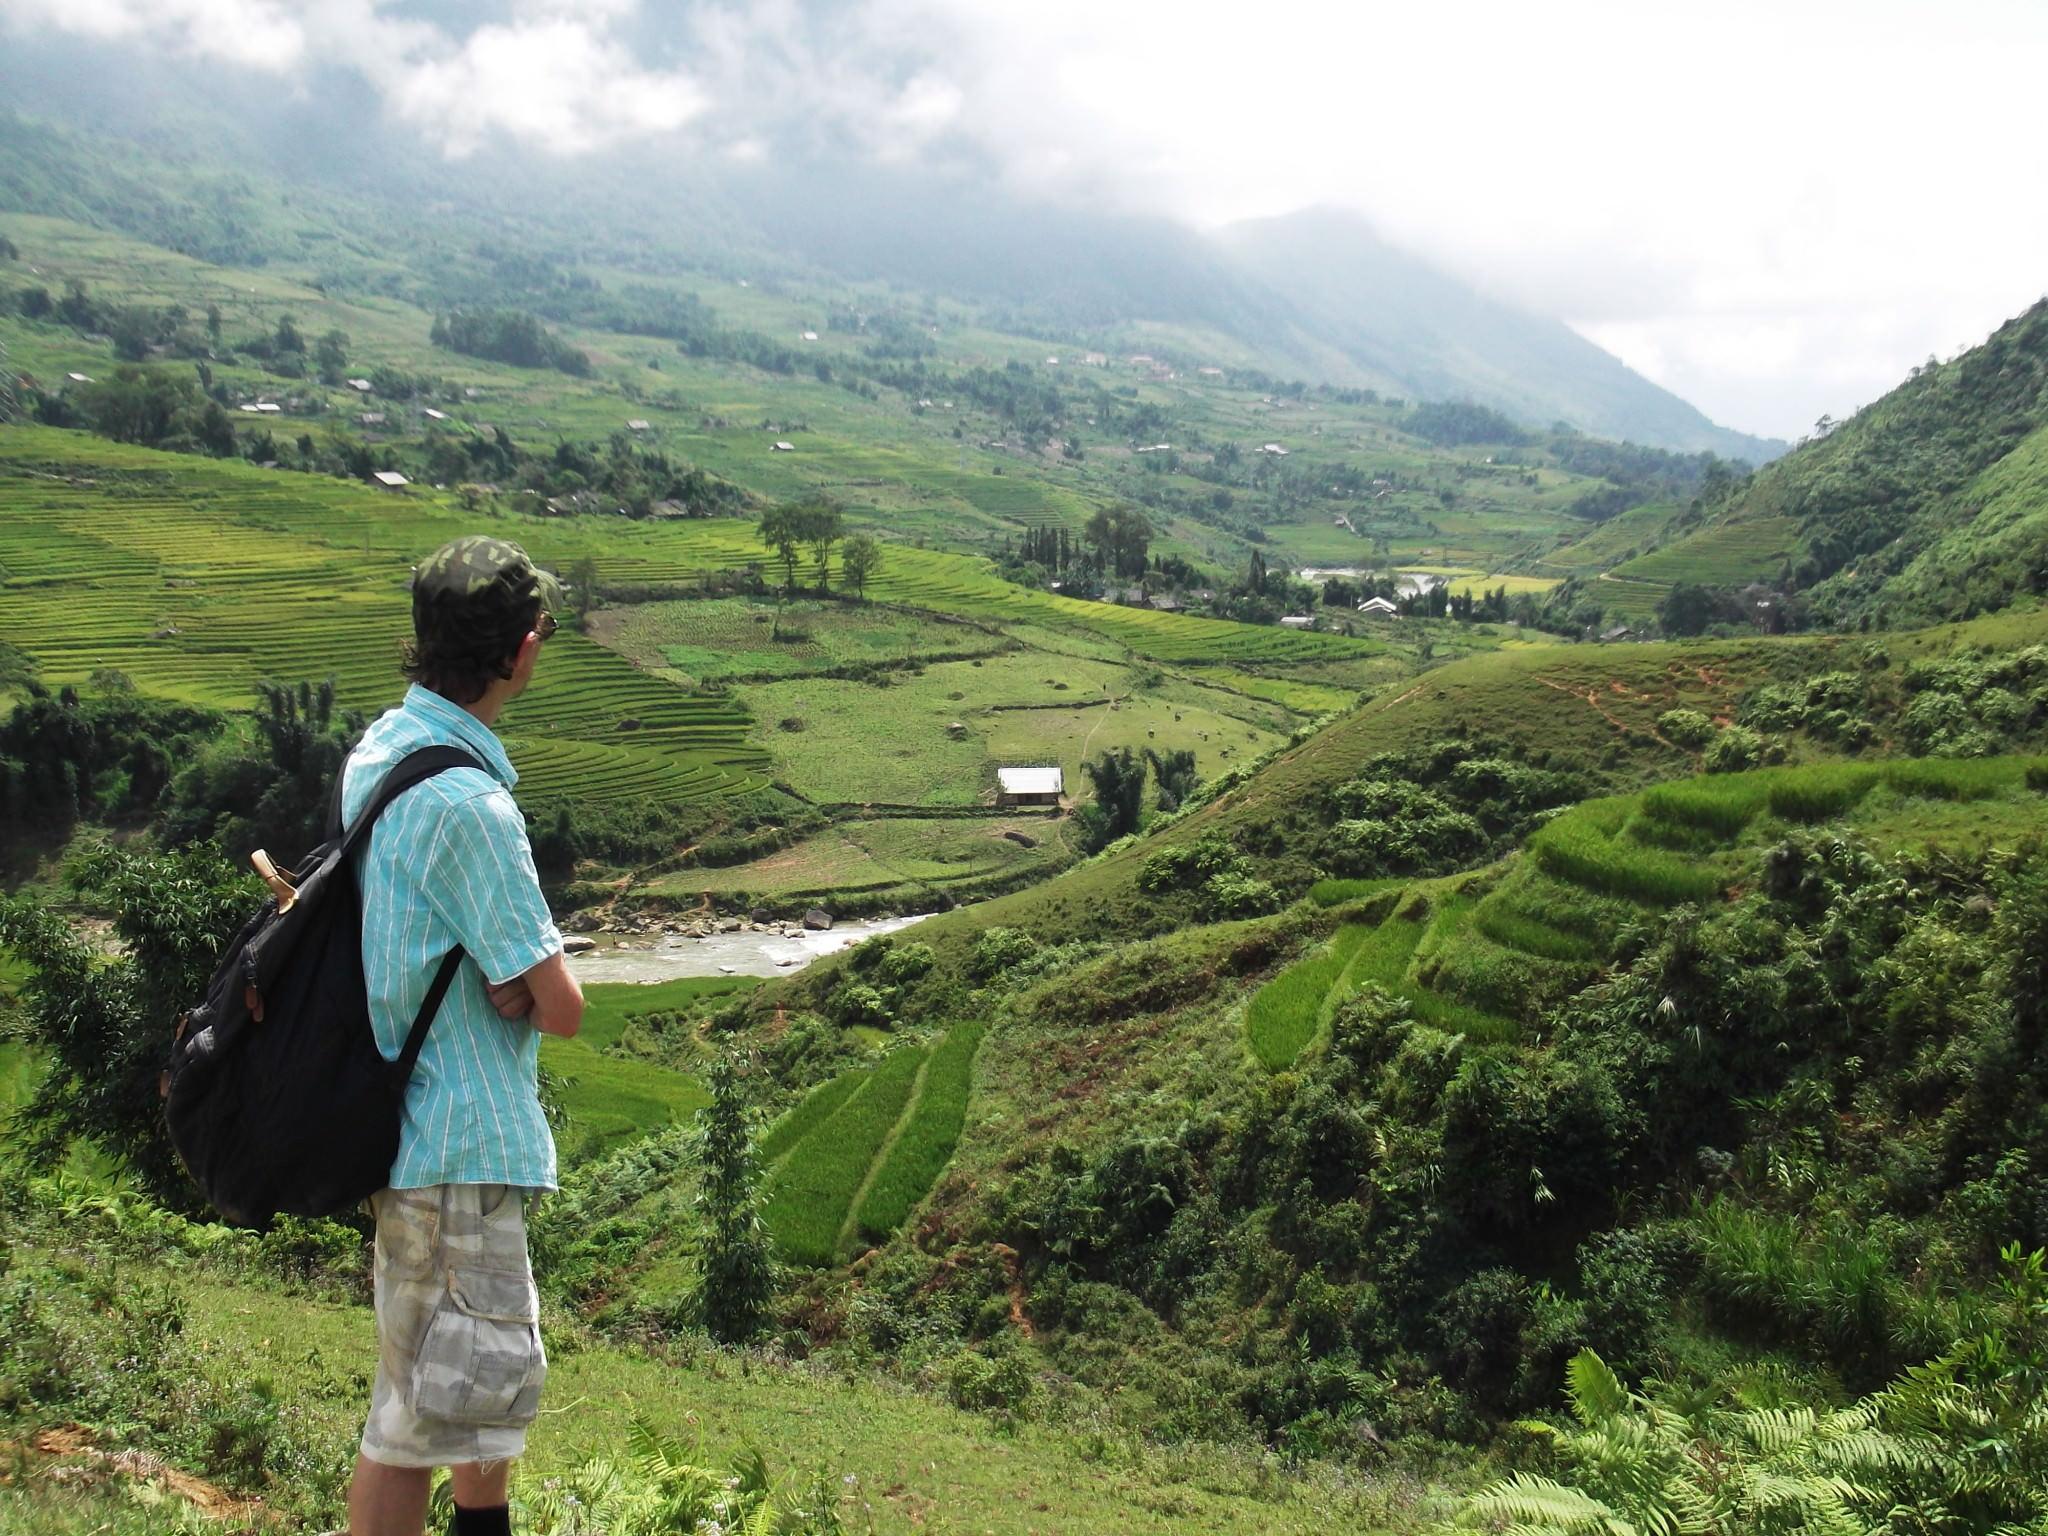 jonny blair hiking in sapa vietnam